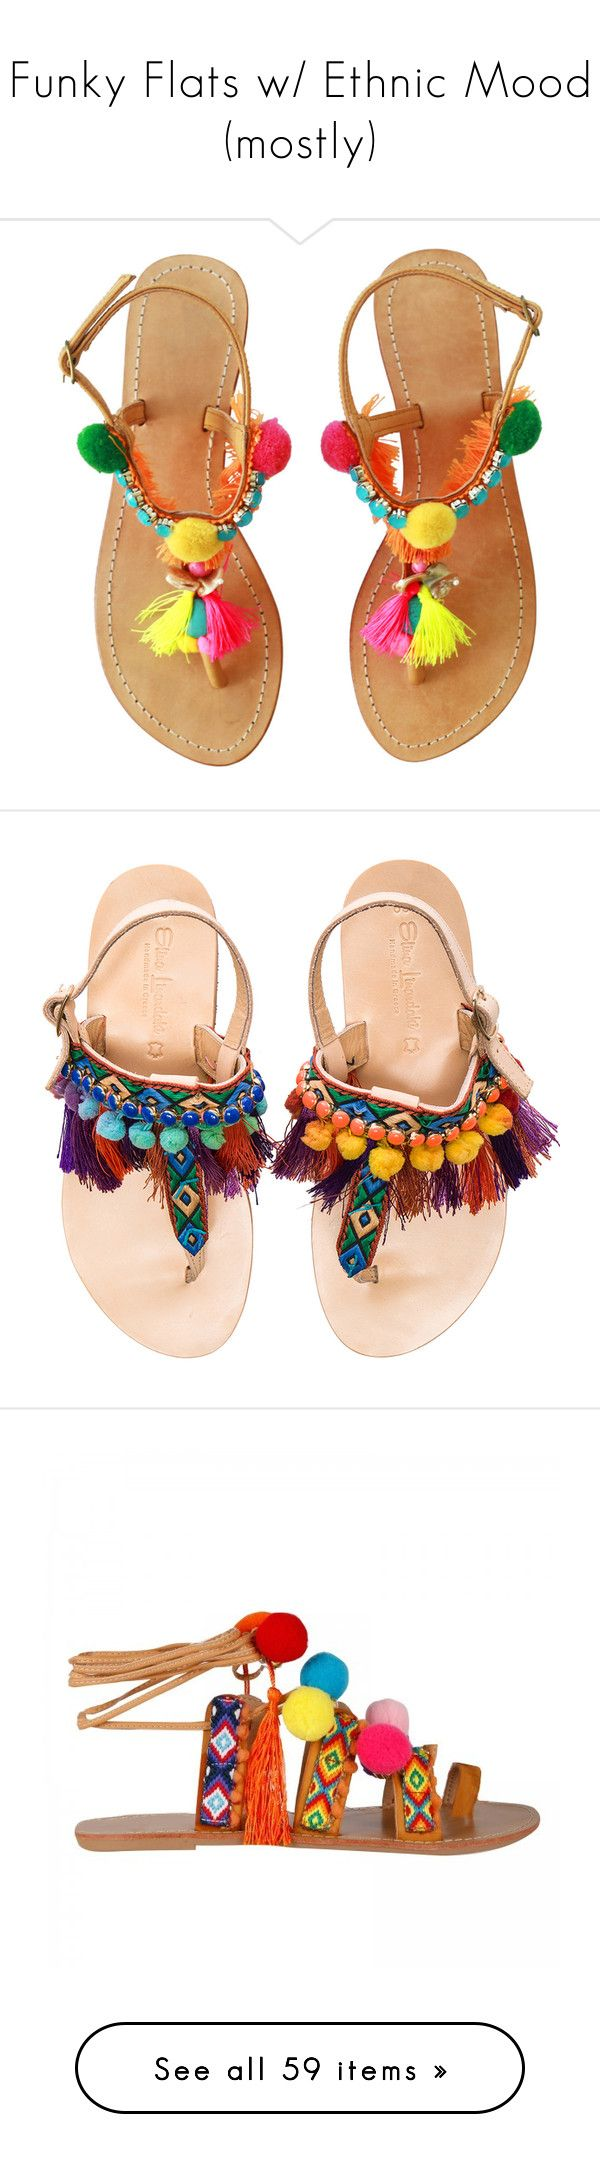 """""""Funky Flats w/ Ethnic Mood (mostly)"""" by judymjohnson ❤ liked on Polyvore featuring shoes, sandals, boho shoes, pom pom sandals, bohemian sandals, boho sandals, flats sandals, flat sandal, fringe sandals and leather slingback sandals"""